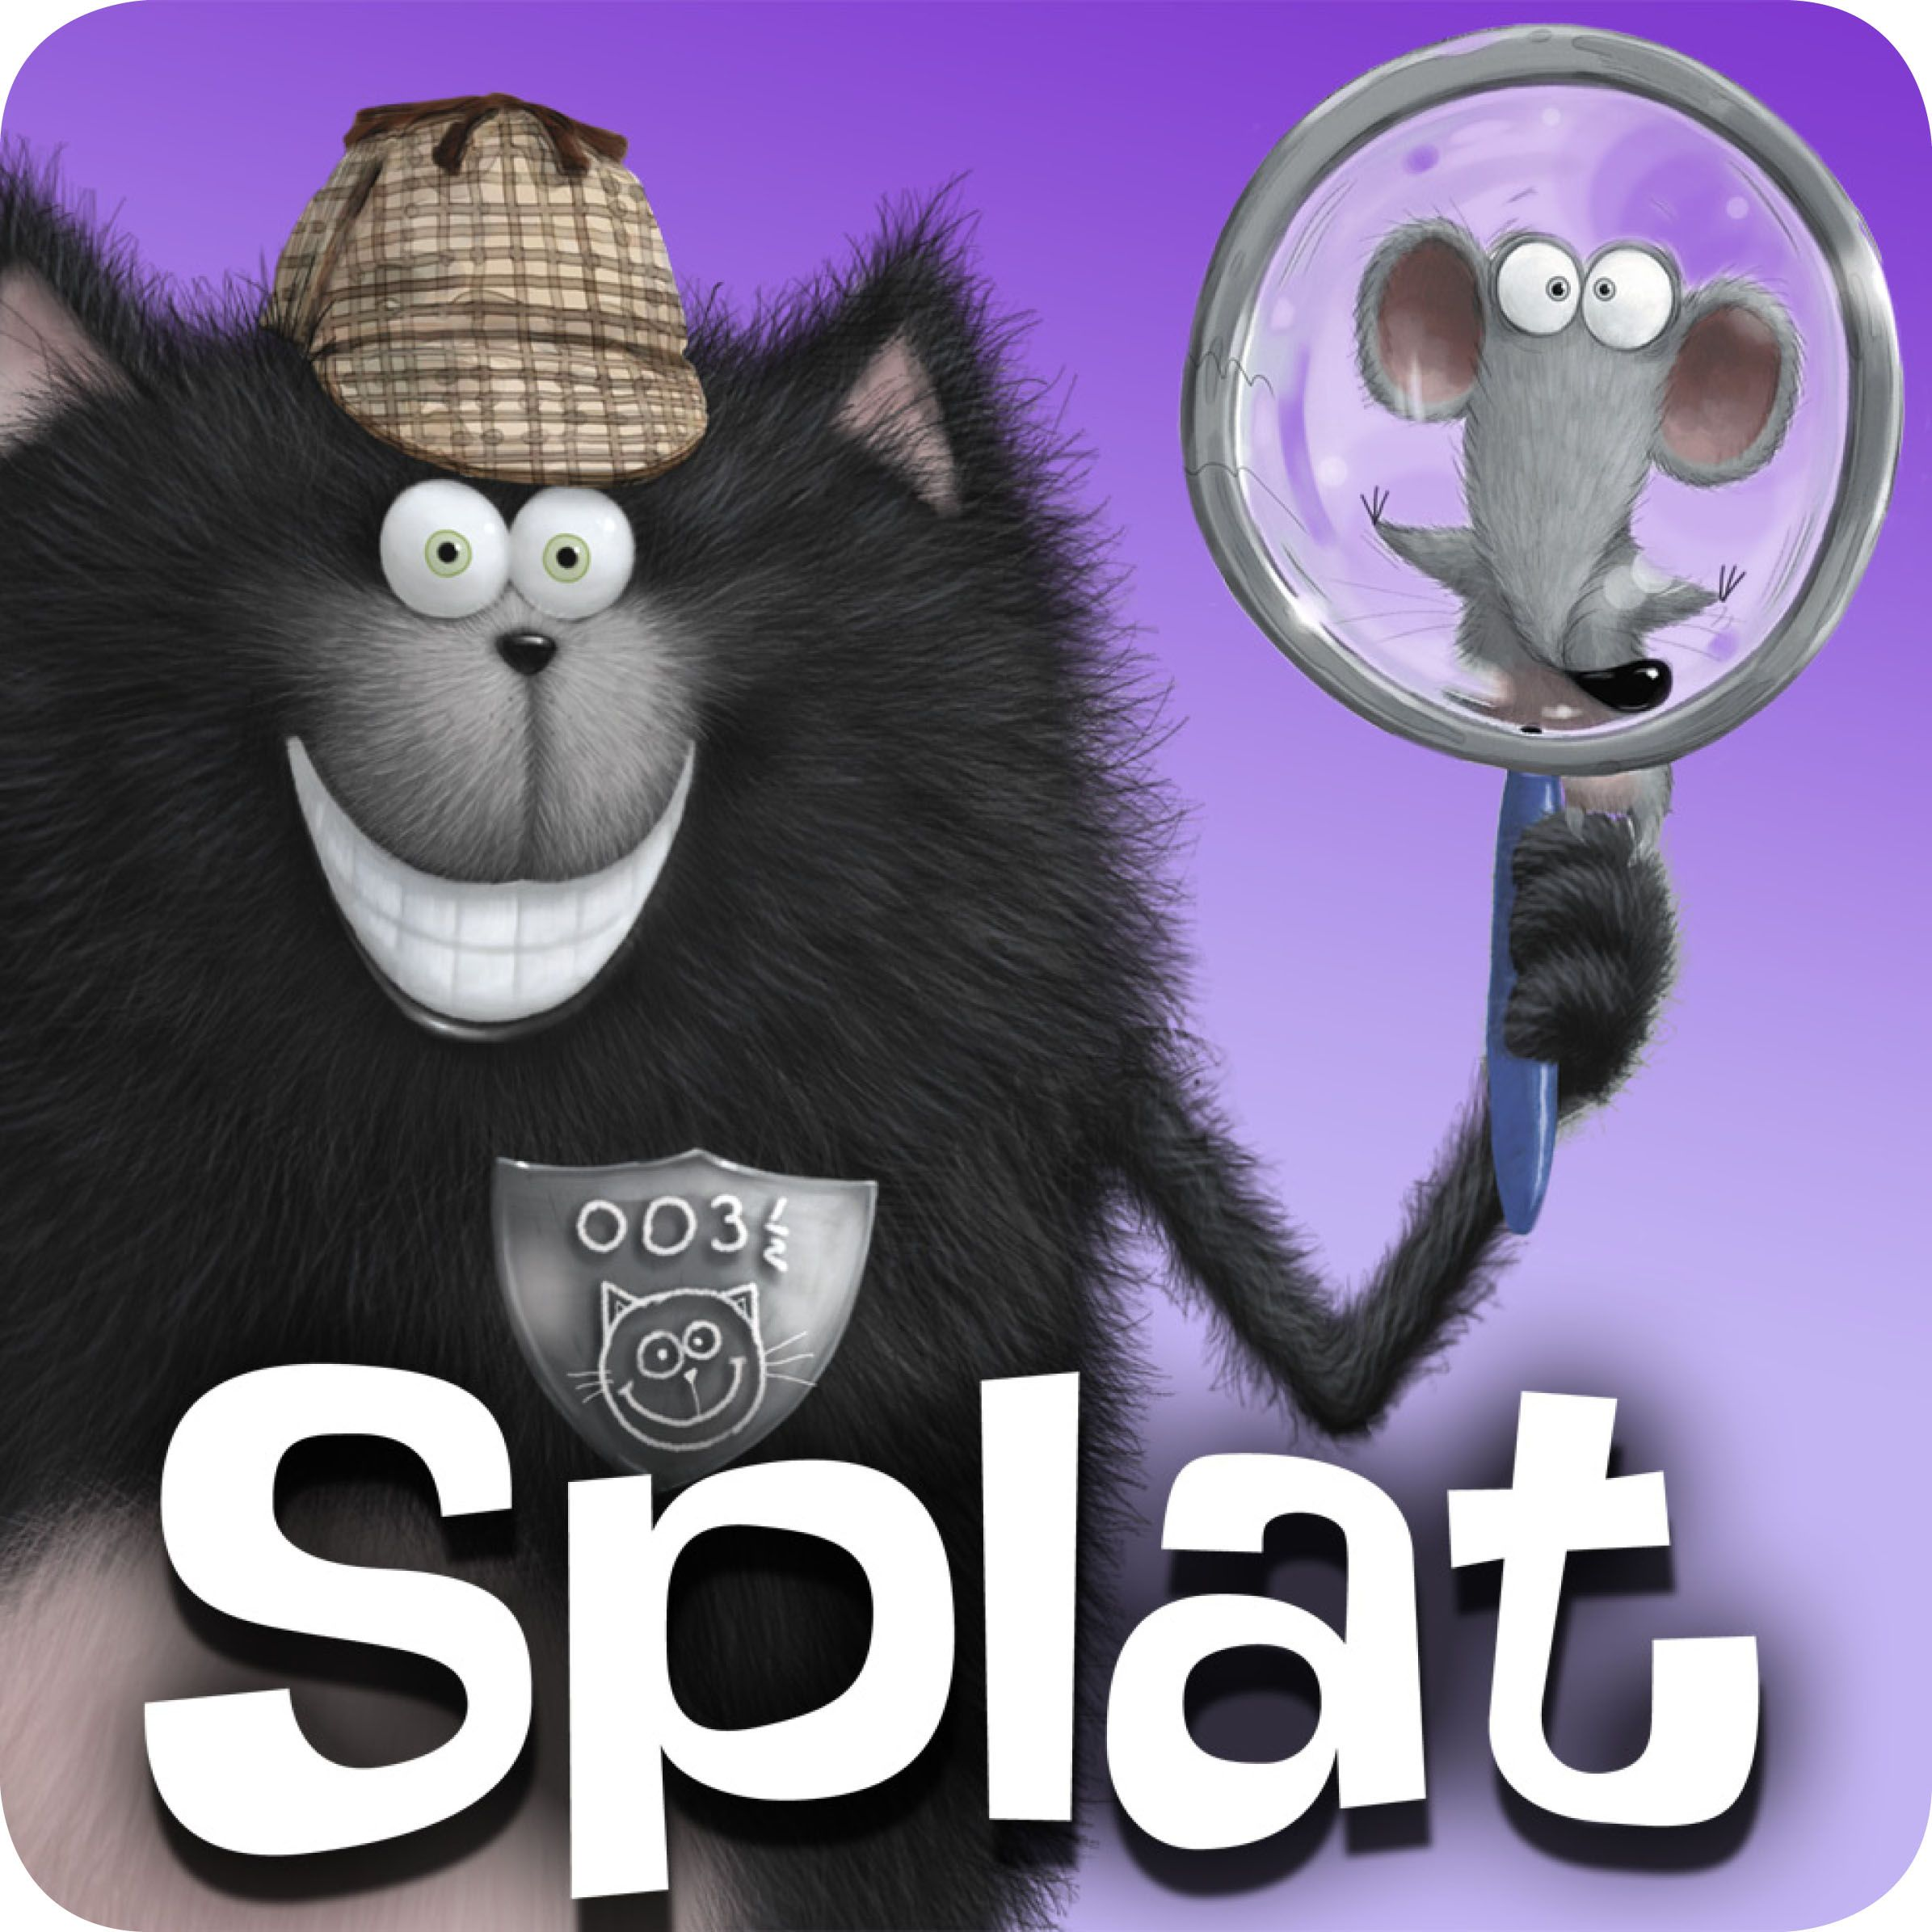 Join Secret Agent Splat in his mission as you read the